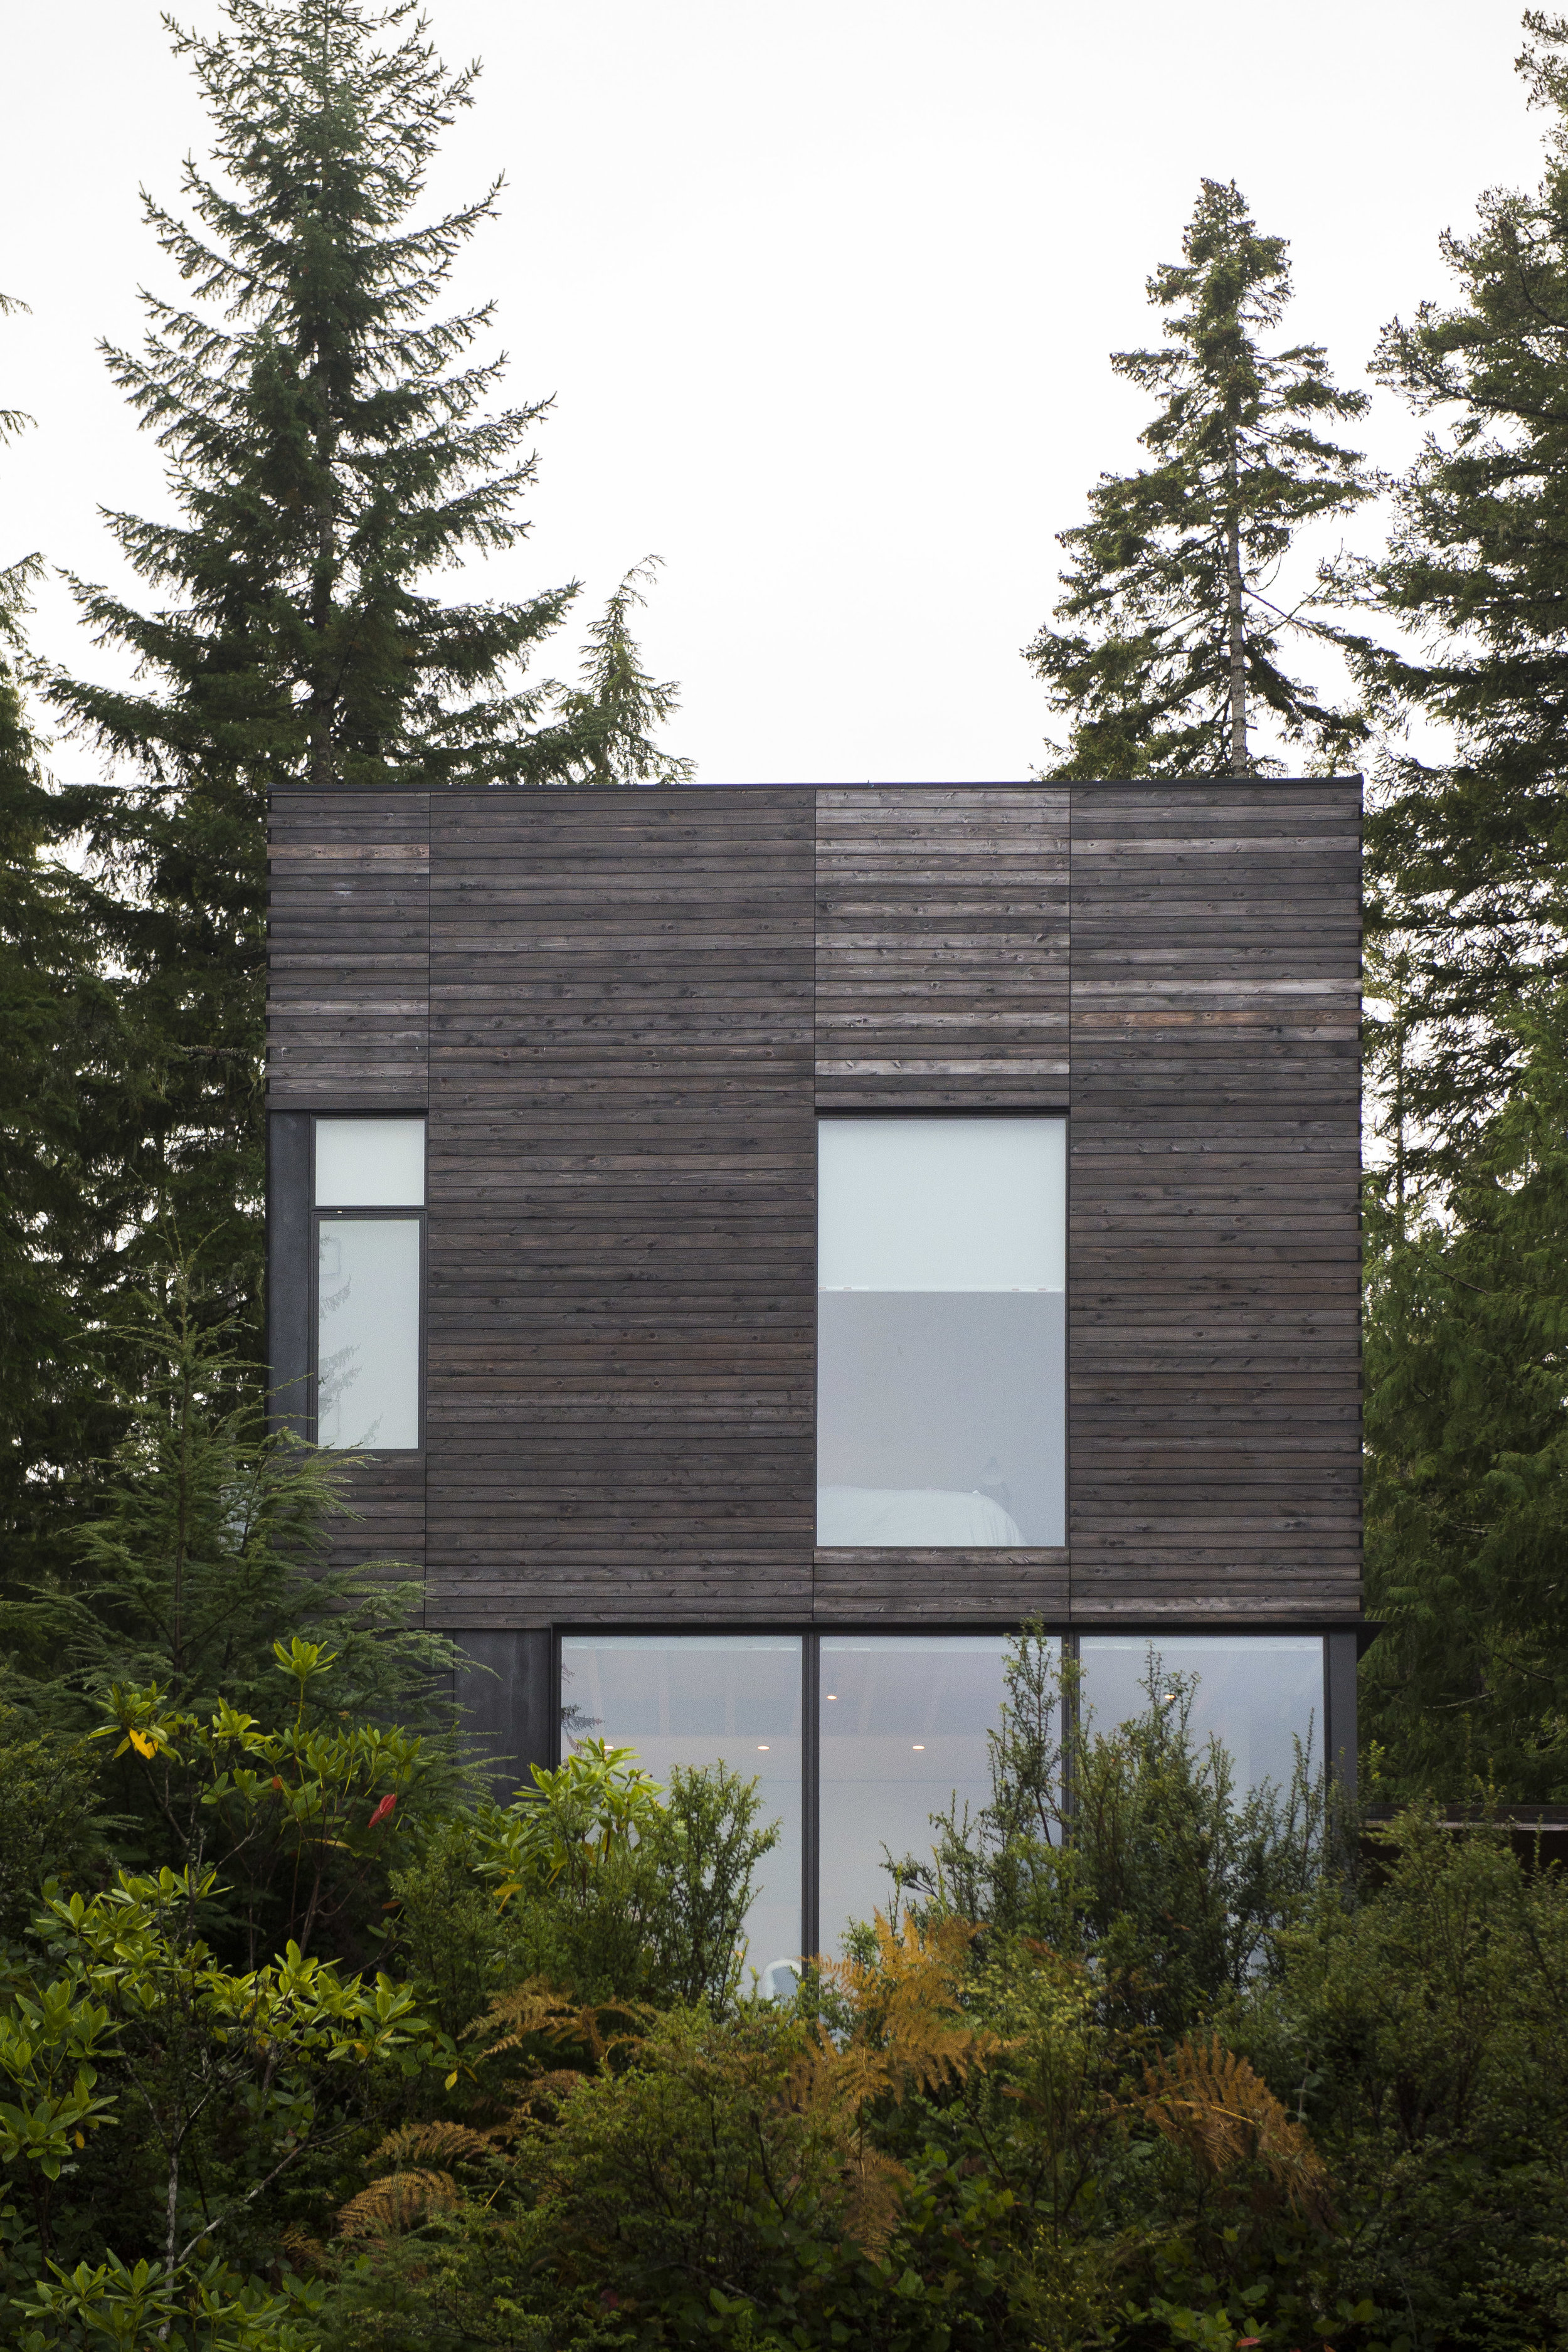 The Little House facade facing the steep slopes of the hood canal- Old growth forest surrounds the cabin.